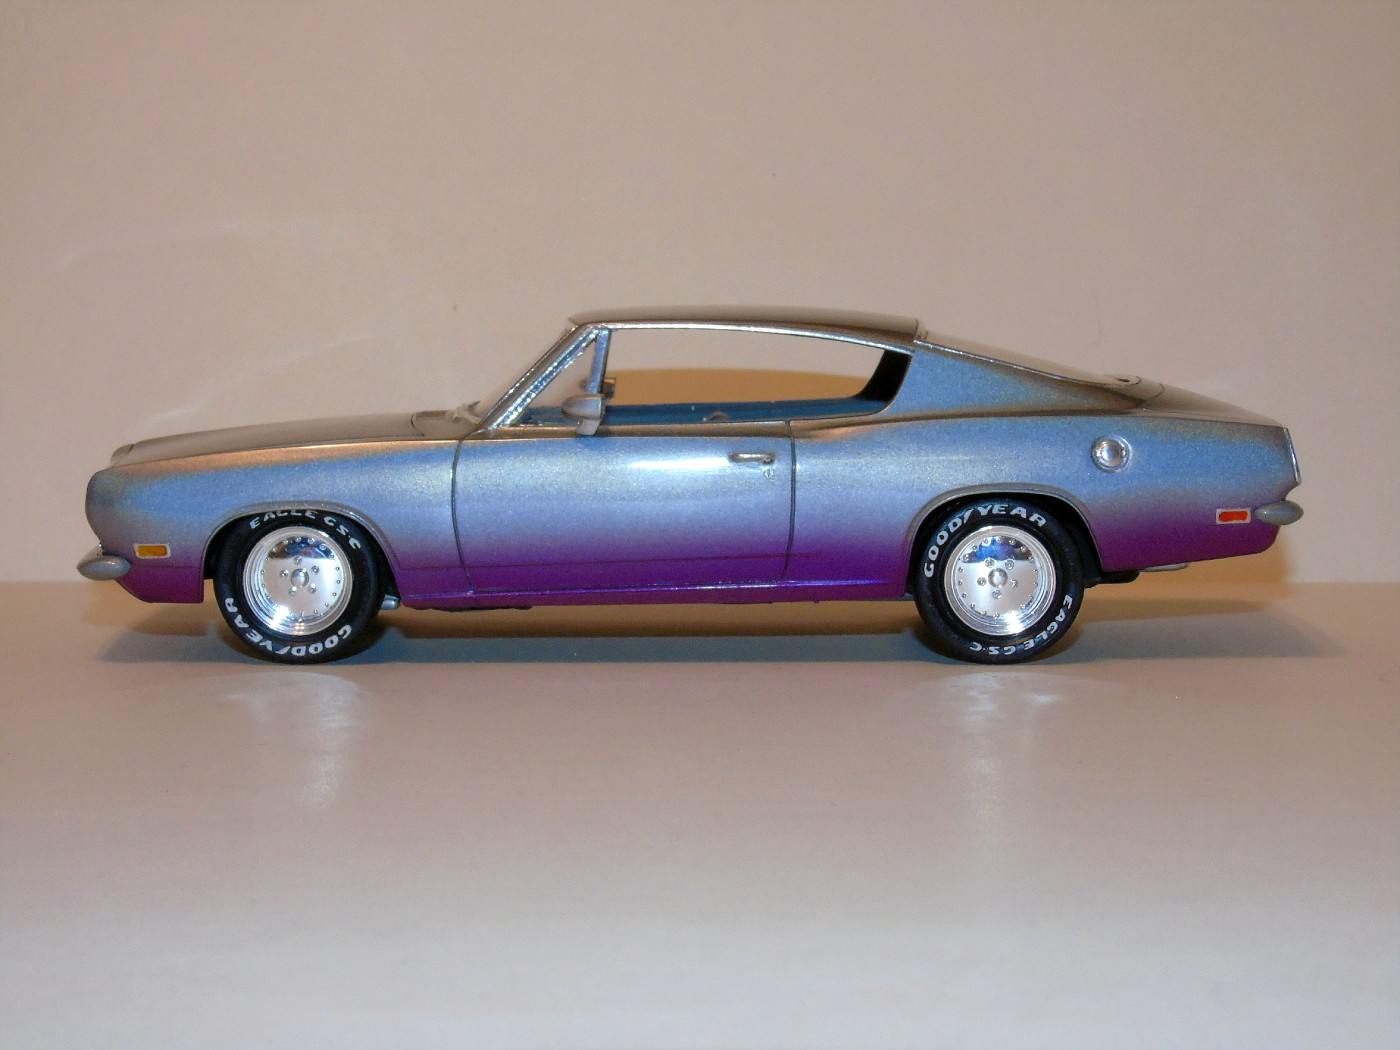 1969 Plymouth Barracuda - The Silverfish 1969Barracuda010-vi